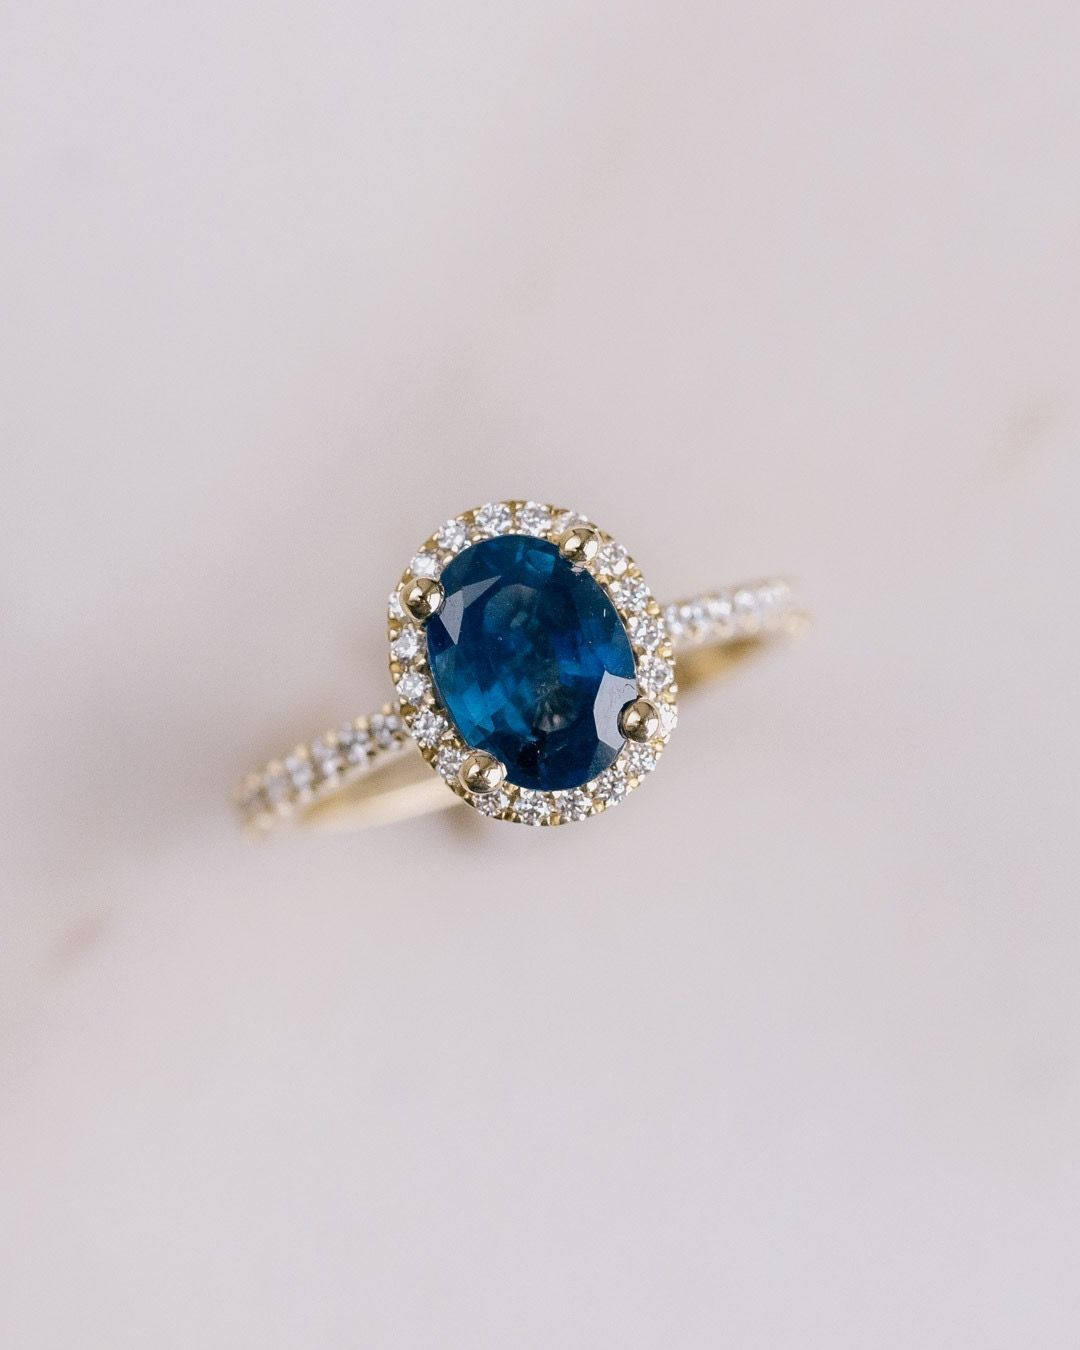 Engagement Rings Vancouver Vintage And Antique Rings Evorden Antique Engagement In 2020 Antique Engagement Rings Sapphire Red Engagement Ring Blue Engagement Ring